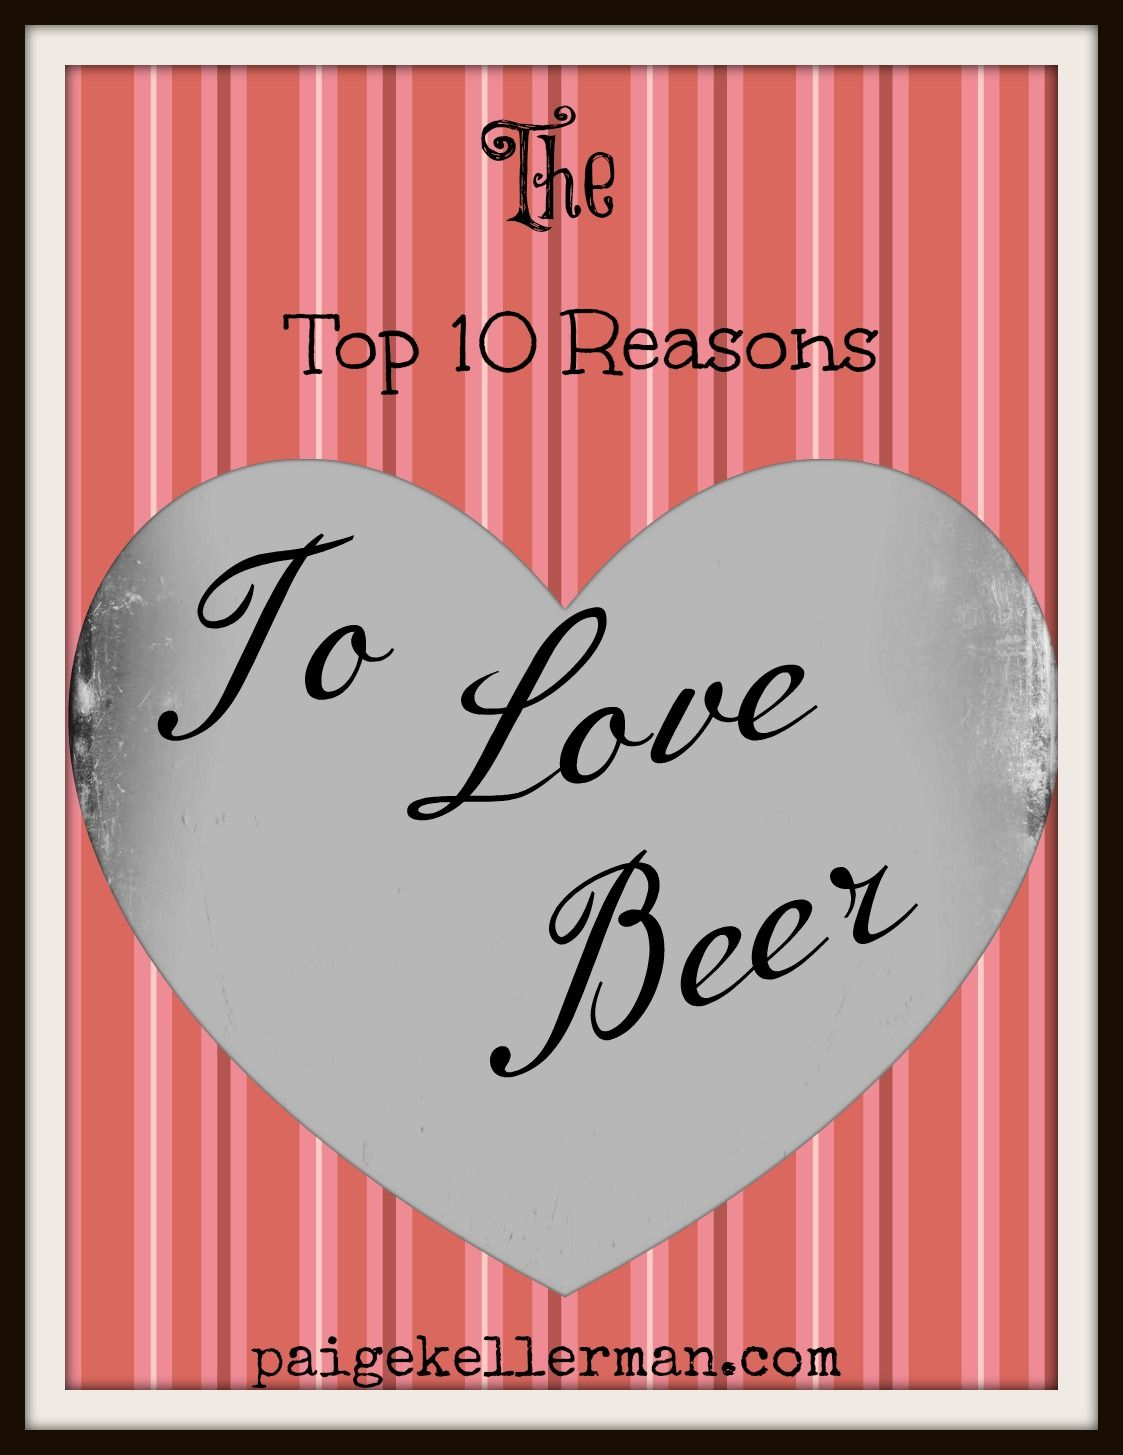 The Top Ten Reasons To Love Beer